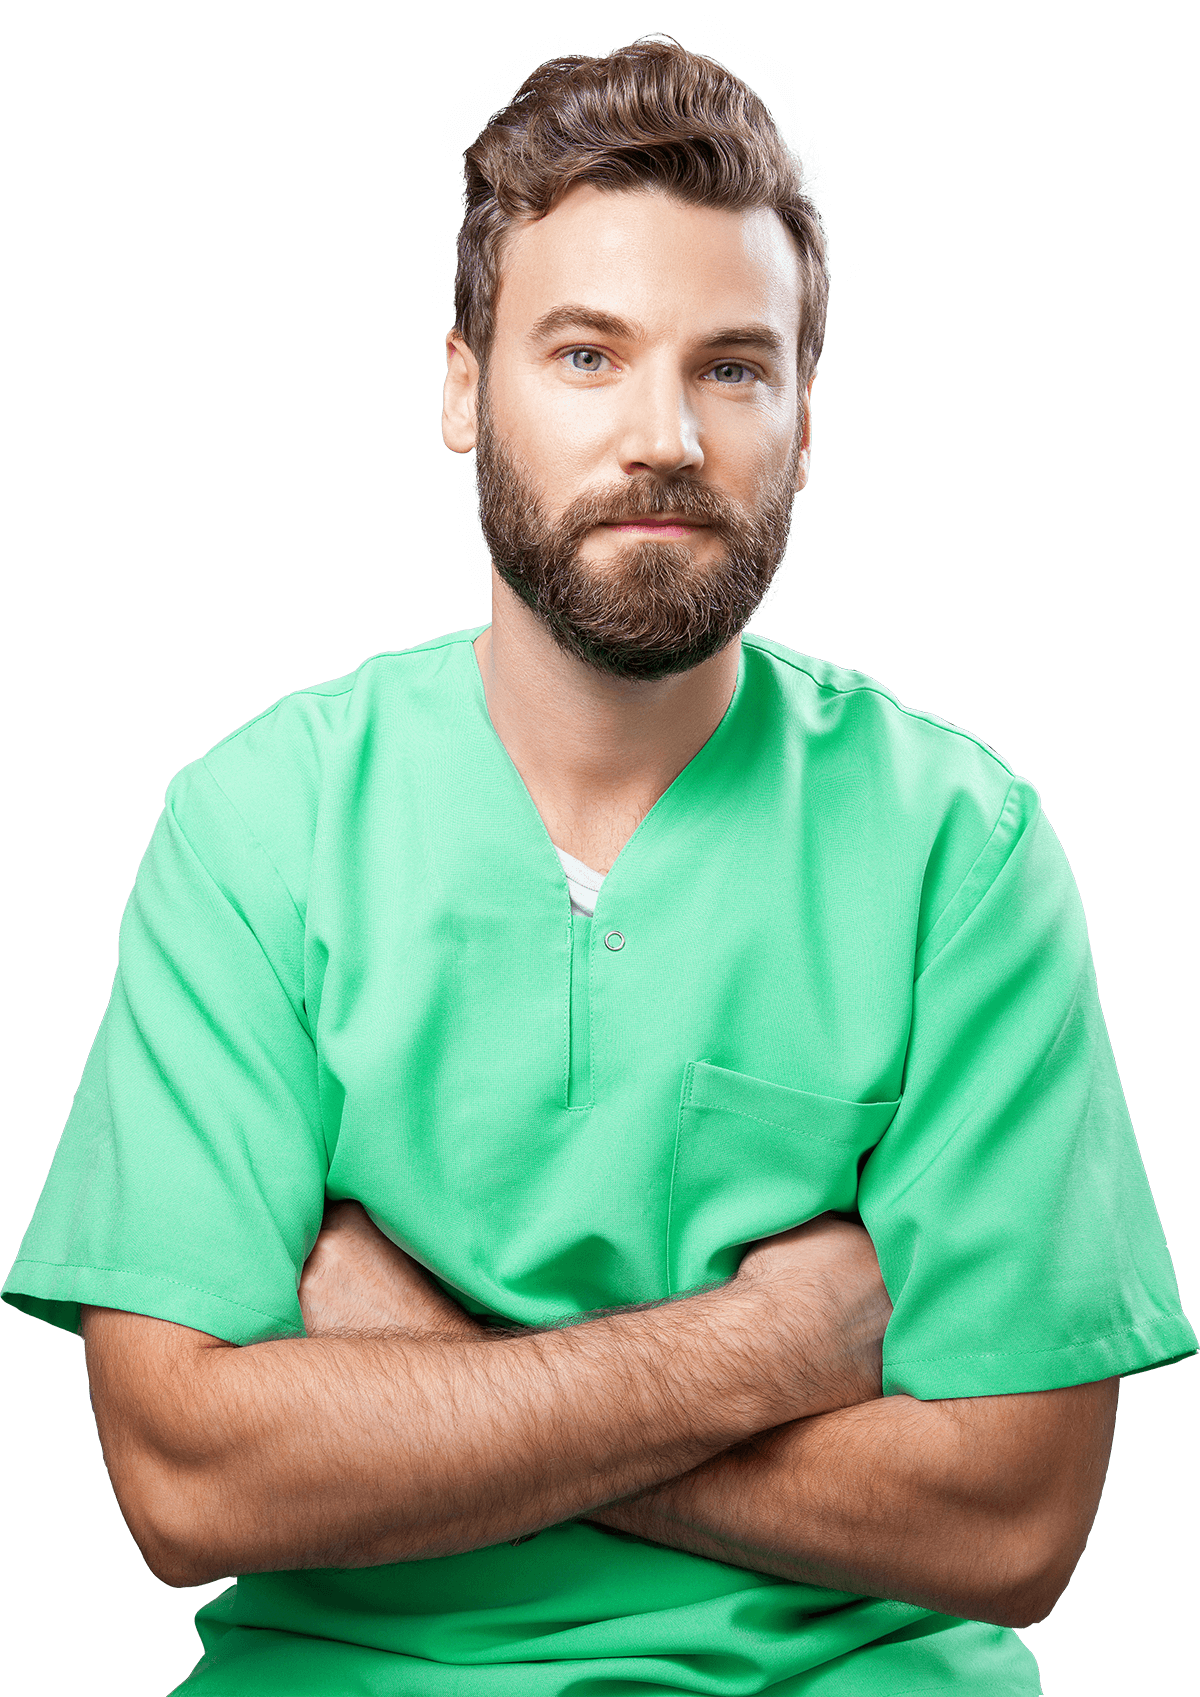 https://evodent.ro/wp-content/uploads/2020/02/img-doctor.png